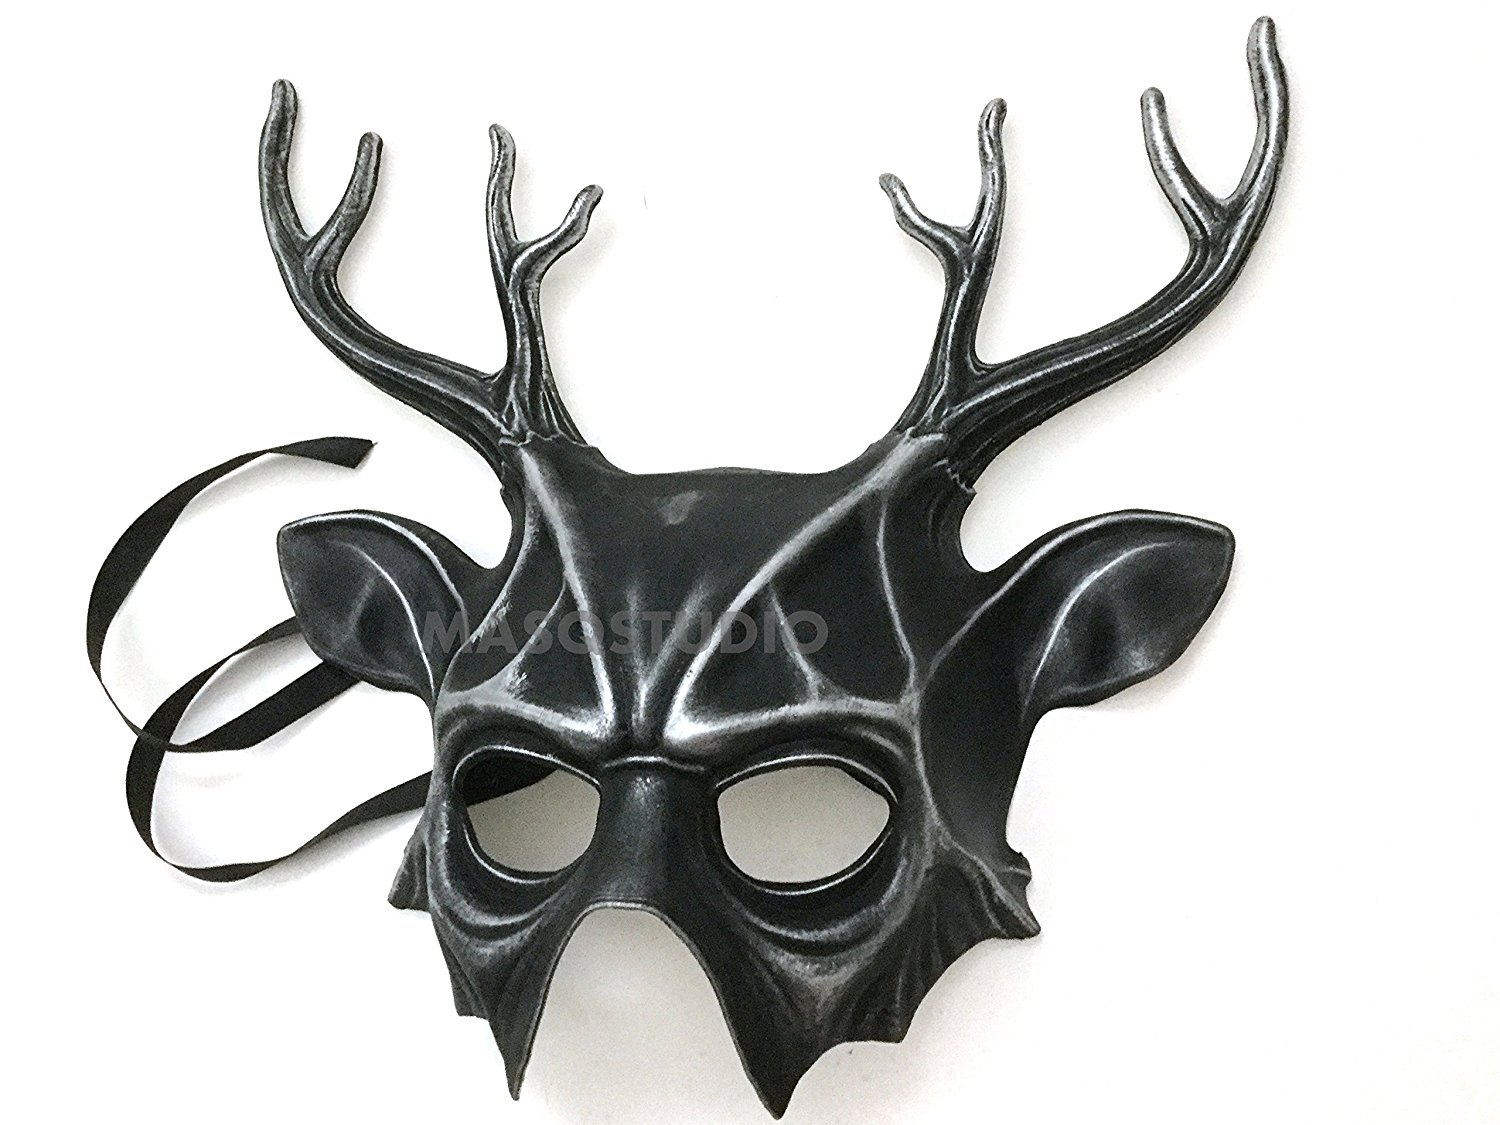 Collectibles African Wall Decorative Mask A1013 Other Decorative Collectibles Art And Decor